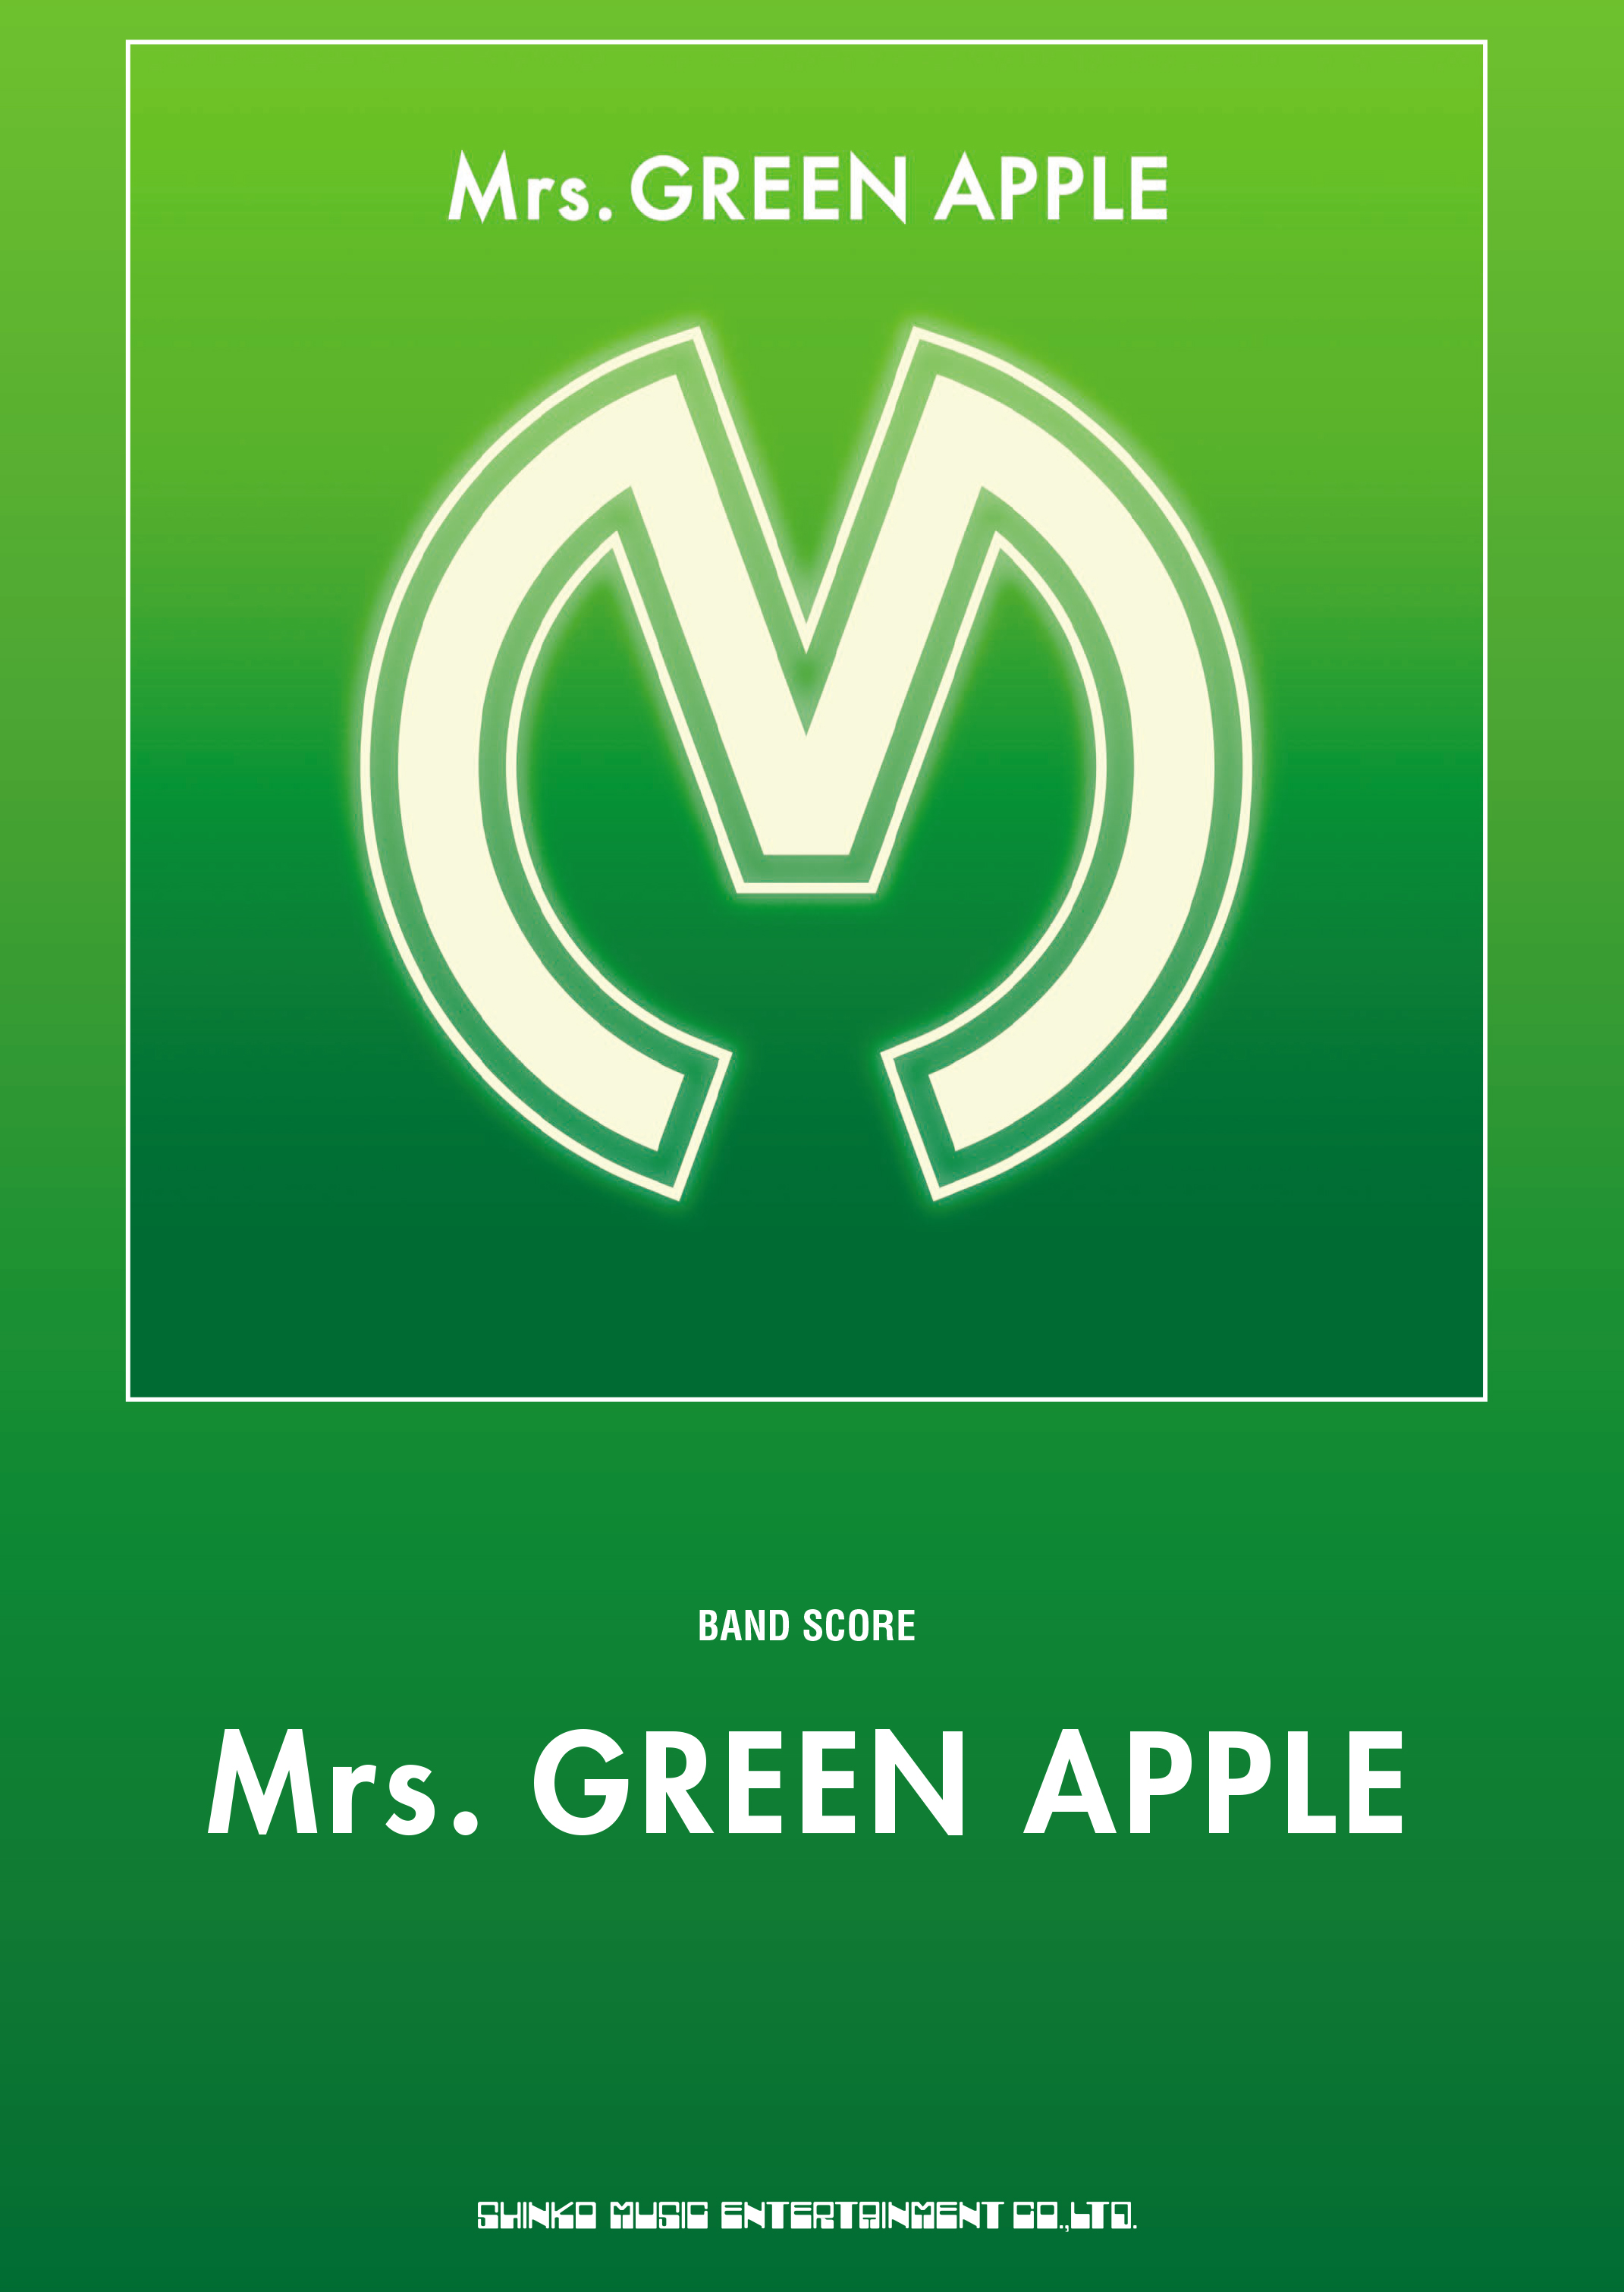 バンド・スコア			Mrs. GREEN APPLE「Mrs. GREEN APPLE」						バンド・スコア				Mrs. GREEN APPLE「Mrs. GREEN APPLE」